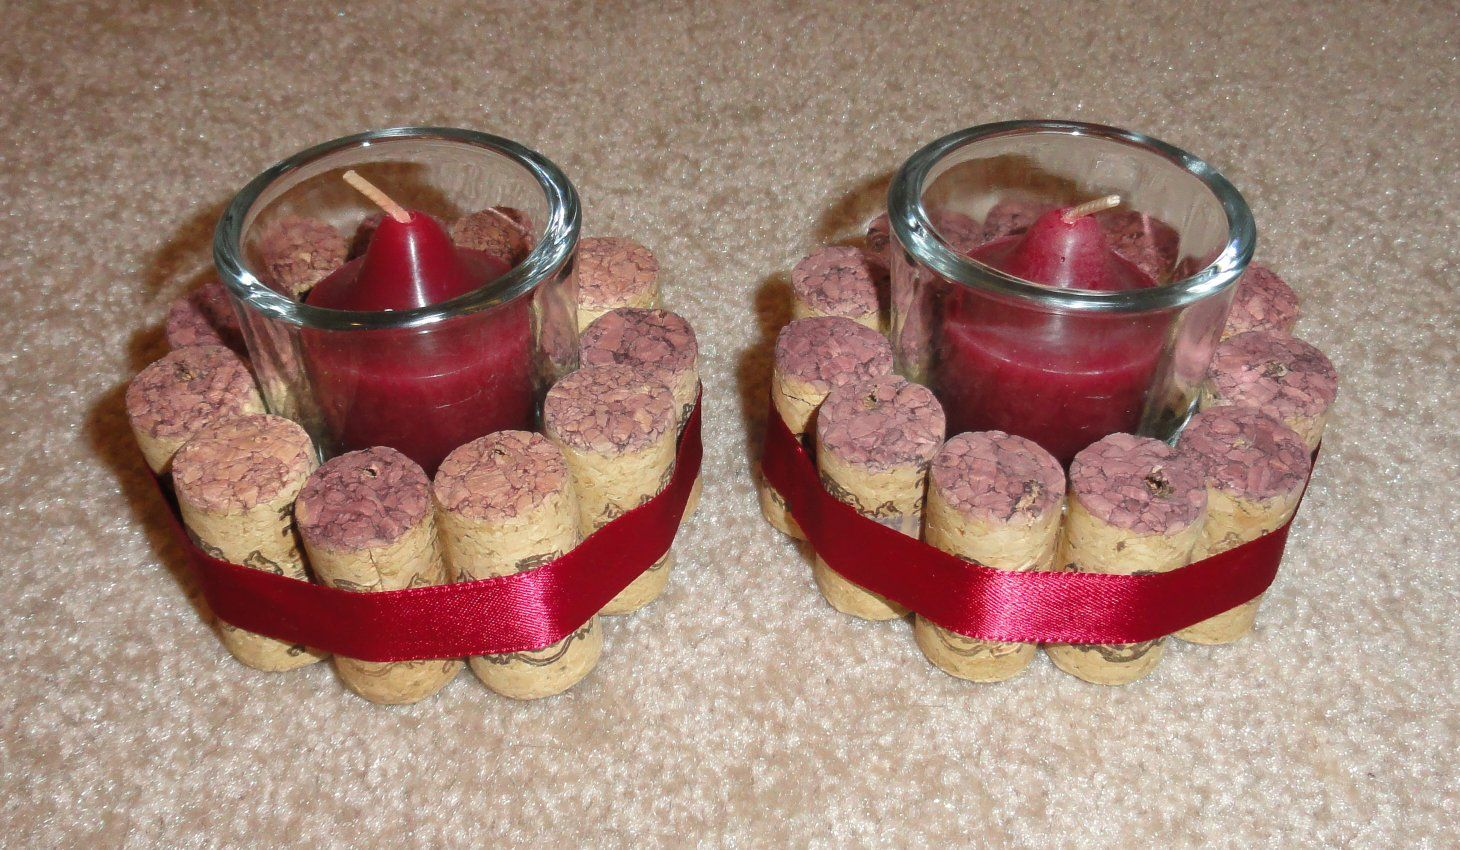 Wine Cork Candle Holders I Had A Ton Of The Same Corks That I Was Able To Use For These E6000 Is Wine Cork Candle Wine Cork Candle Holder Cork